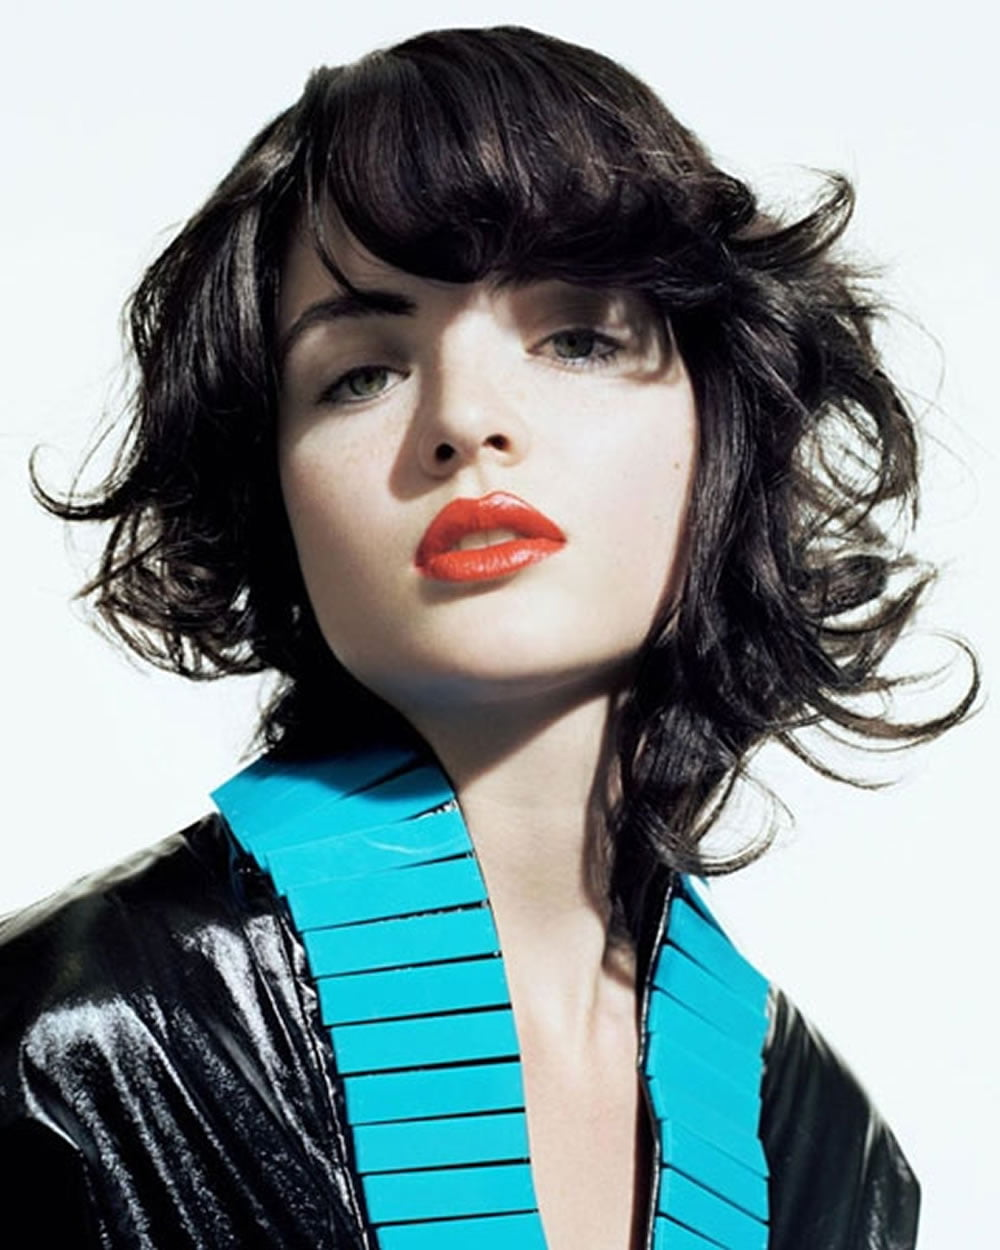 wavy short bob hair 2019 for girls with square face